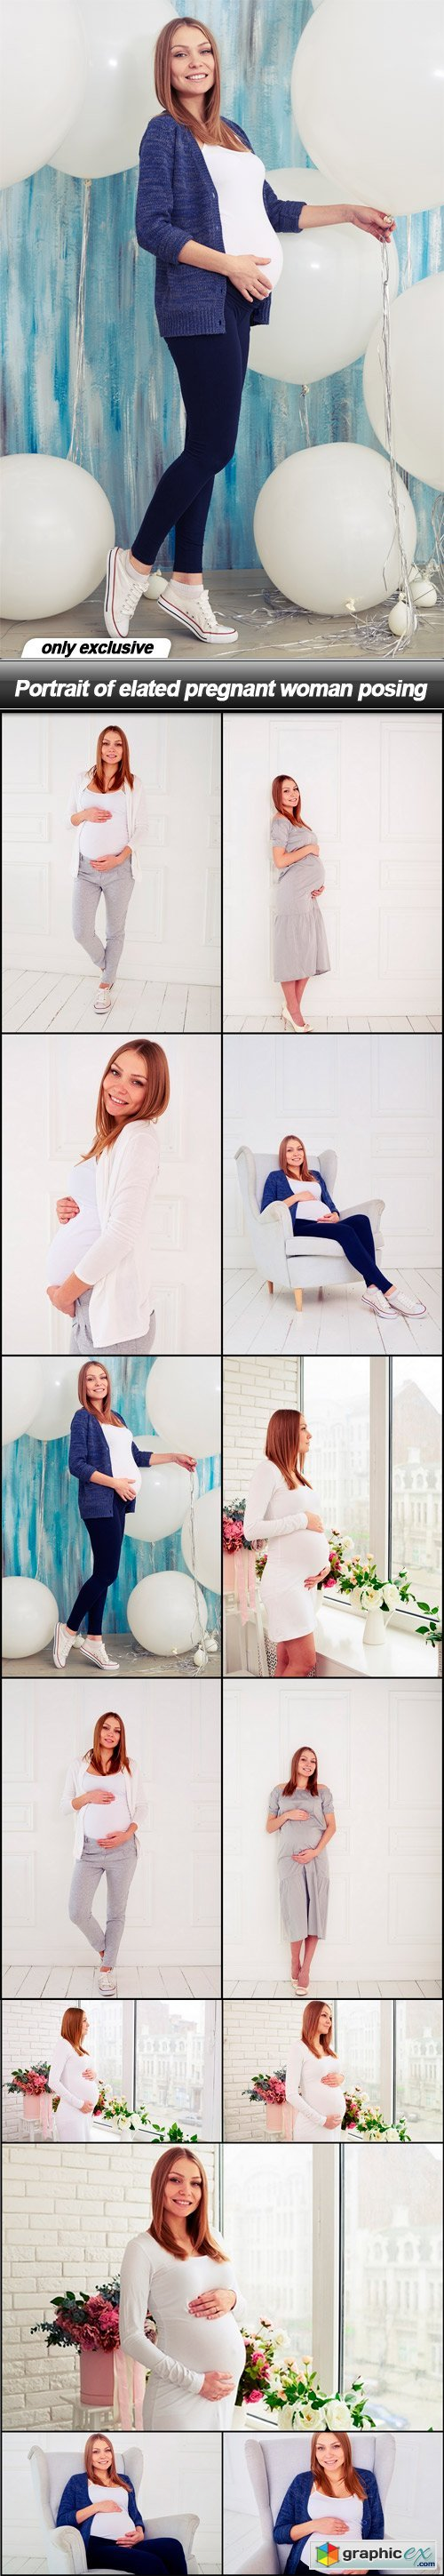 Portrait of elated pregnant woman posing - 13 UHQ JPEG